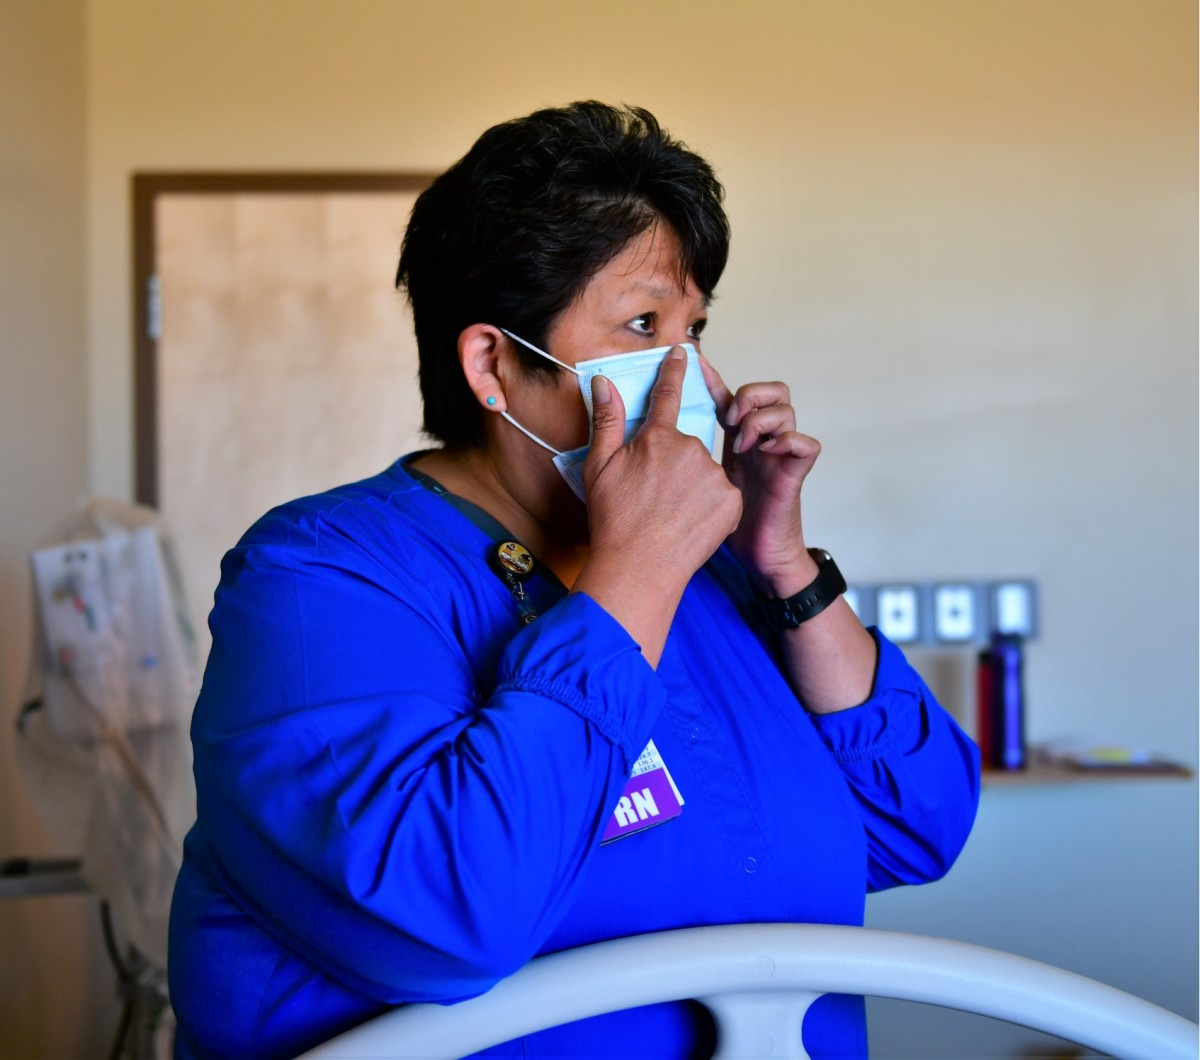 Eileen Russell, RN, is the Supervisory Clinical Nurse of the Emergency Department at Kayenta Health Center. She is demonstrating how to don a